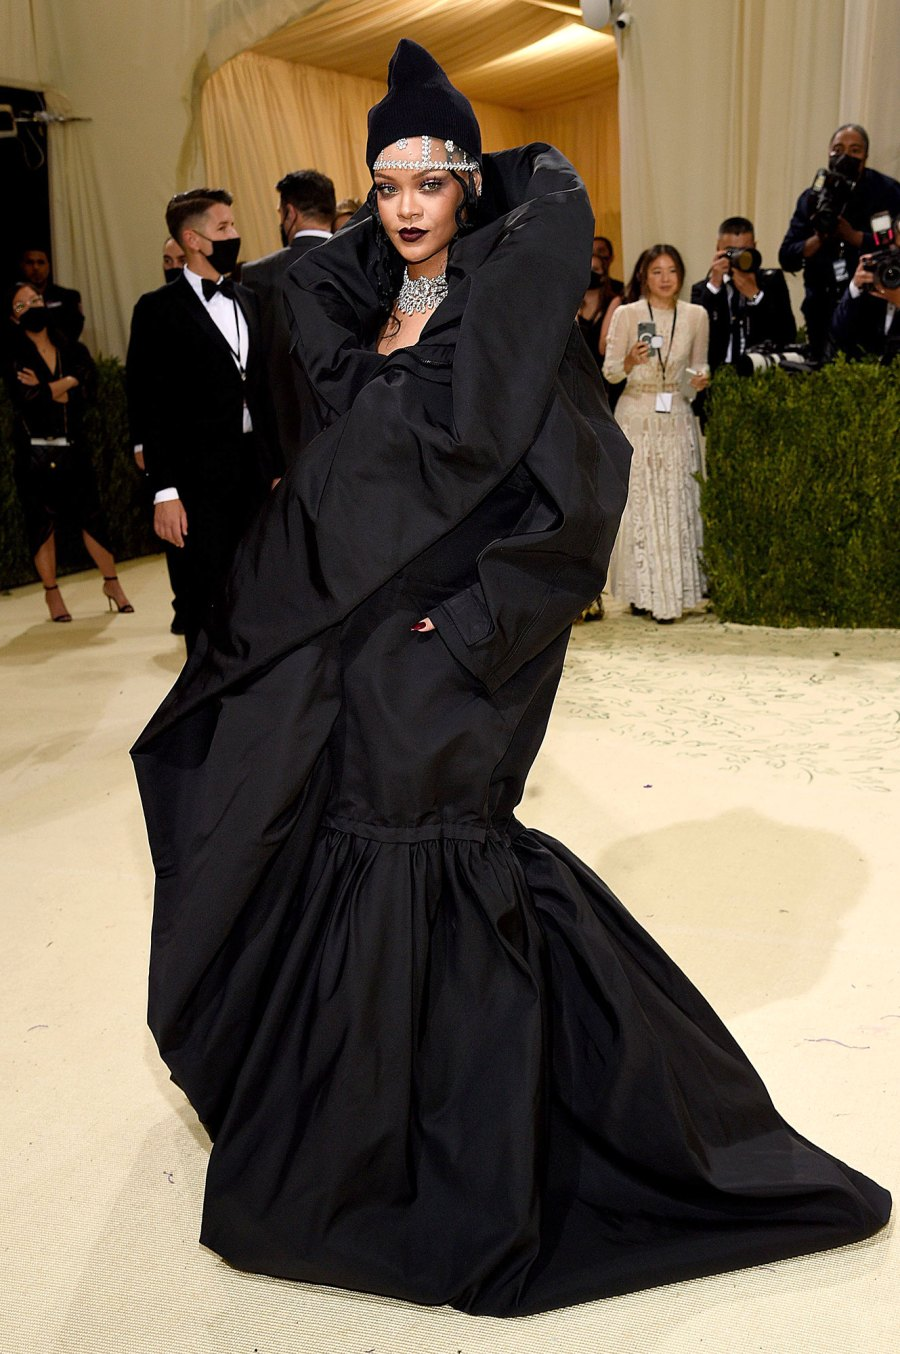 Feature Rihanna Most Extravagant Celebrity Bling From the 2021 Met Gala 2